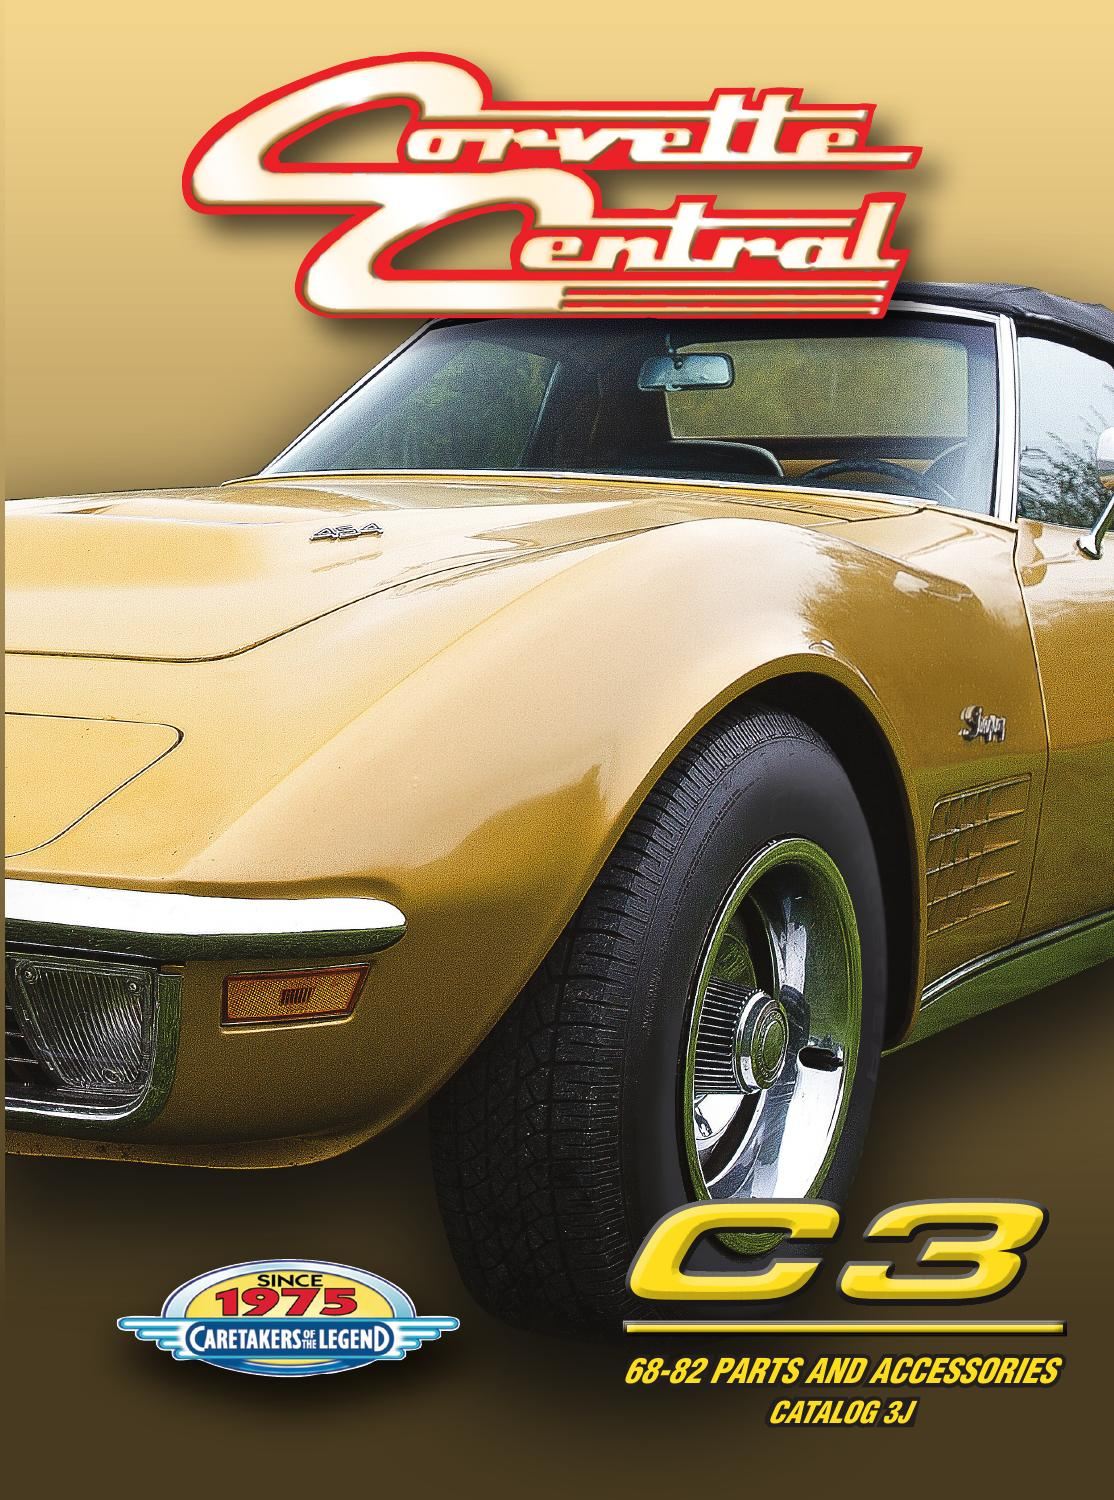 What products does Corvette Central sell?